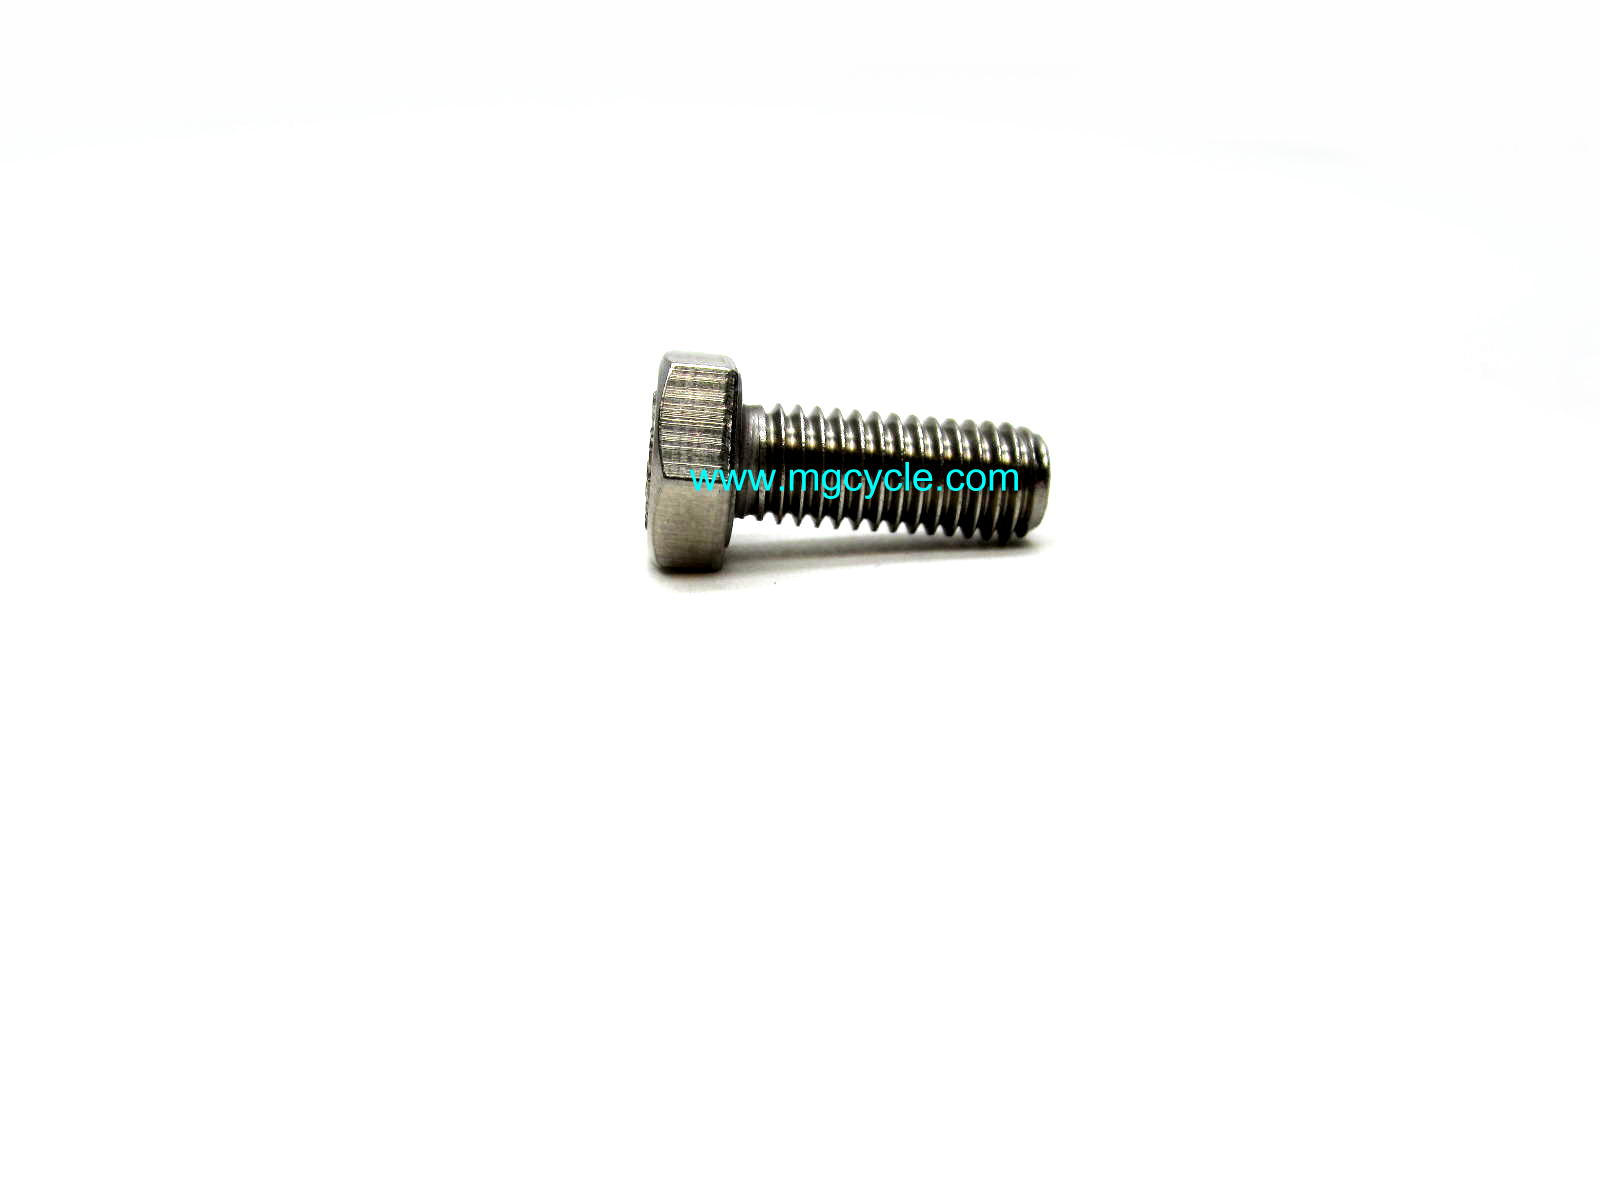 8mm x 20mm hex head bolt, stainless steel